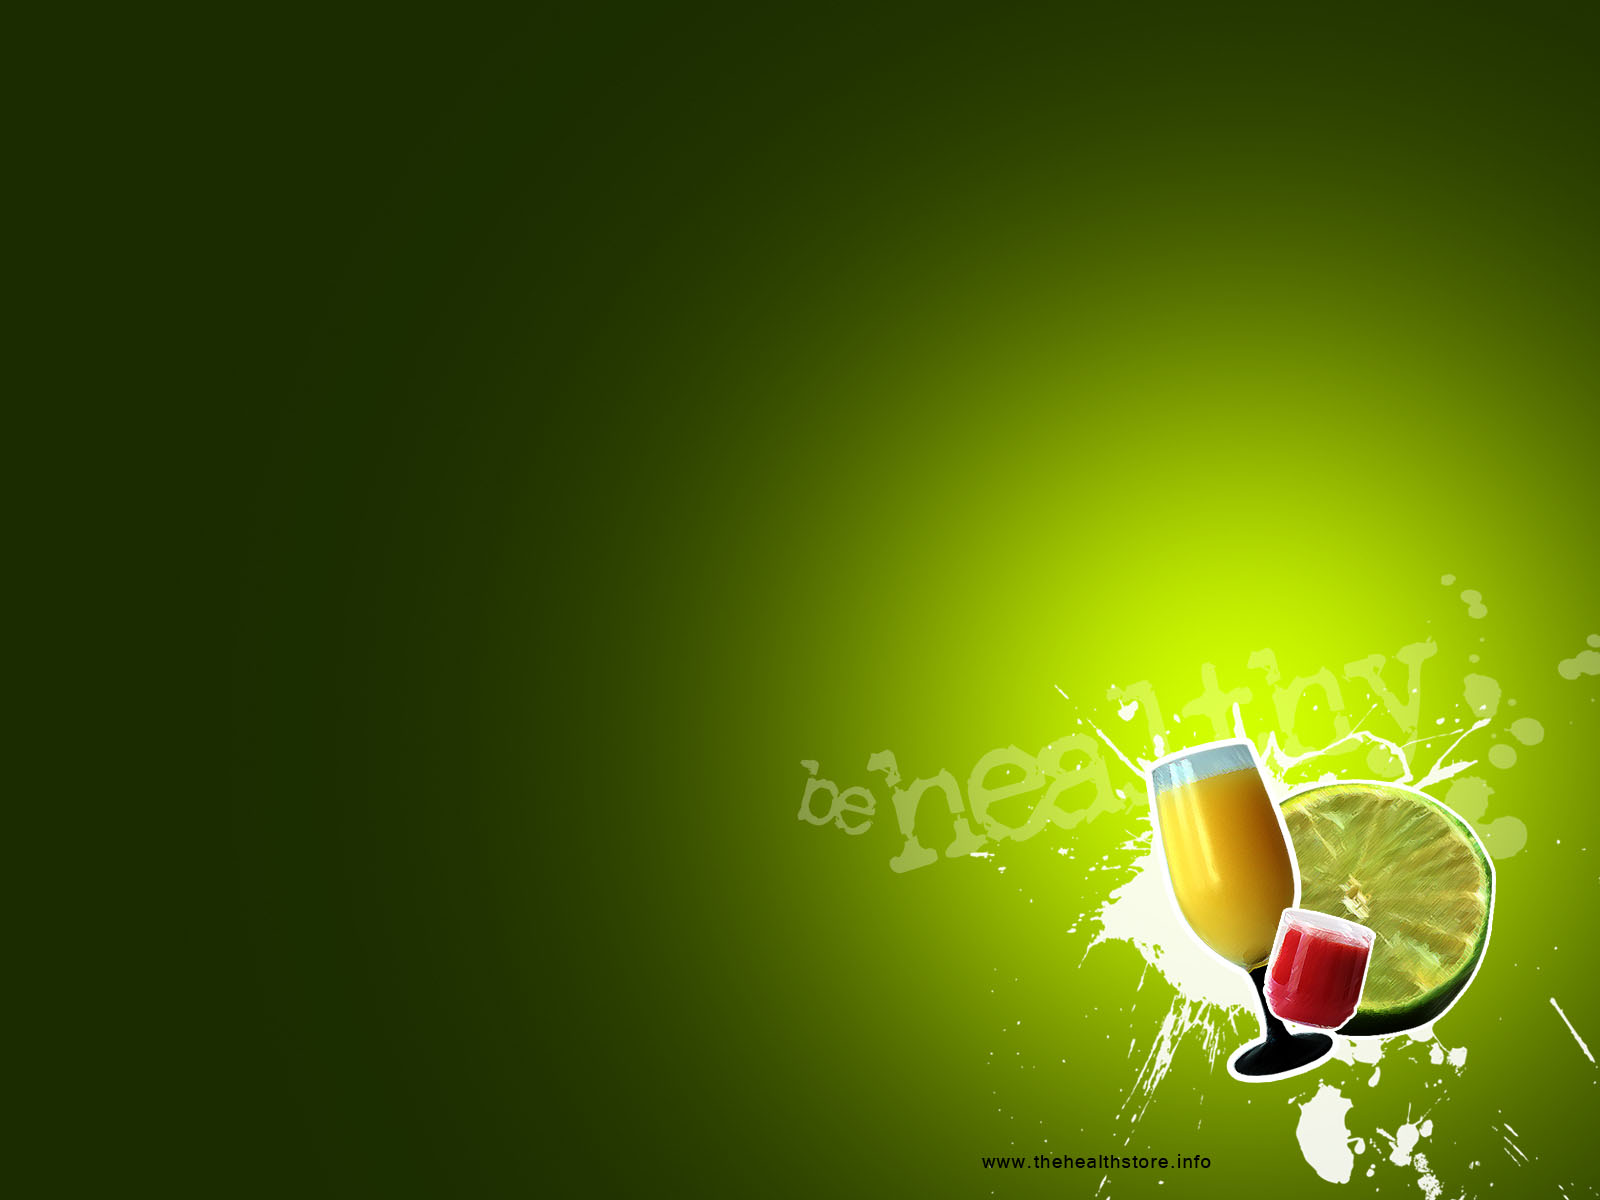 Health Medical Picture PPT Backgrounds